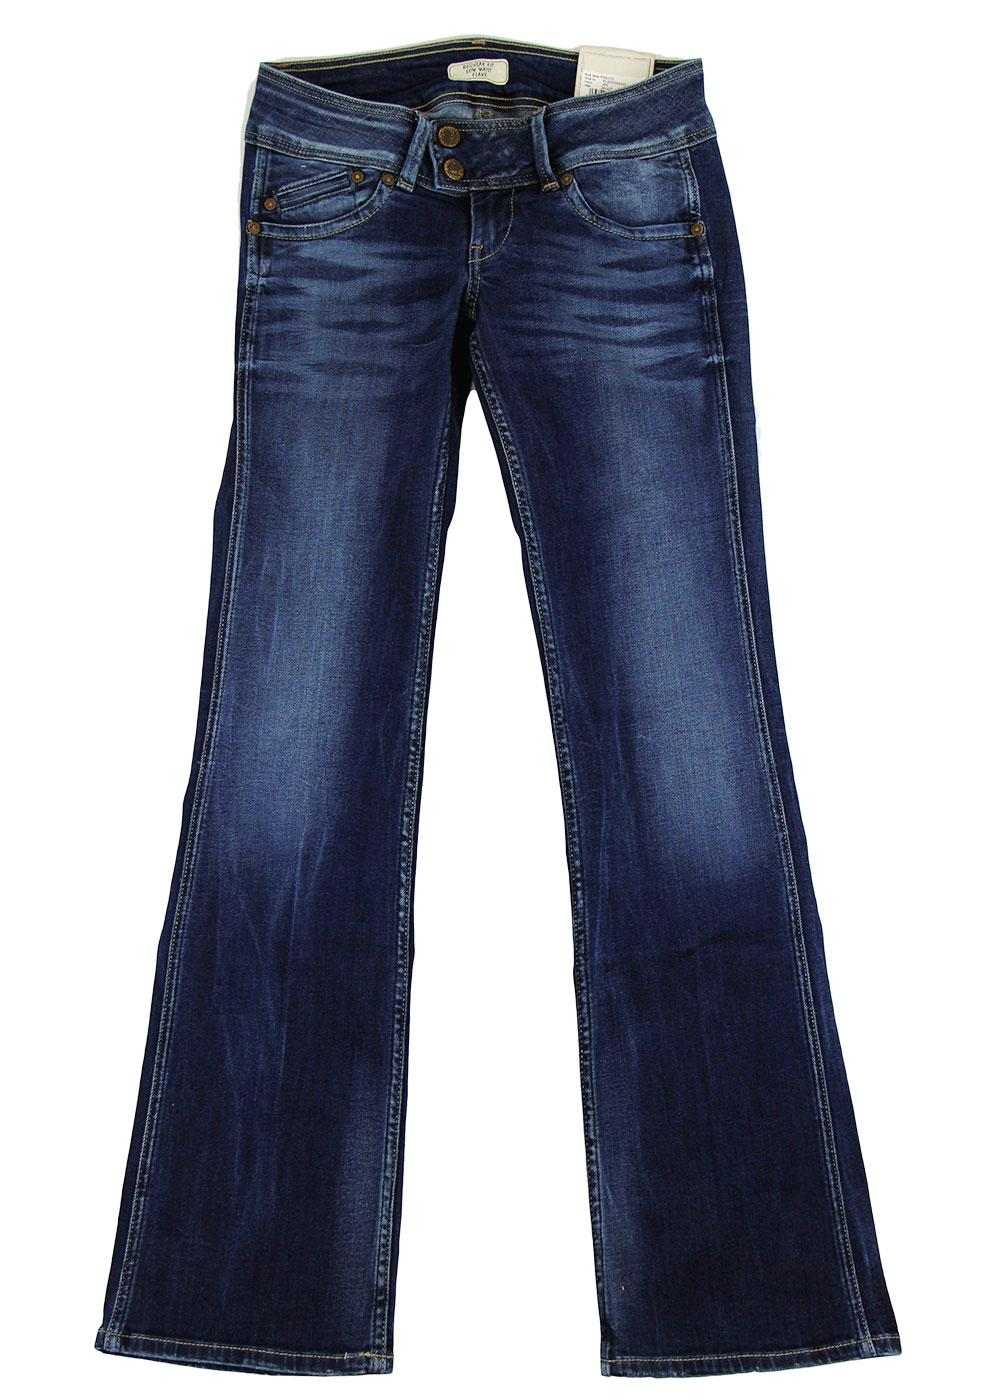 Pimlico S22 PEPE JEANS Retro 70s Bootcut Flares BW